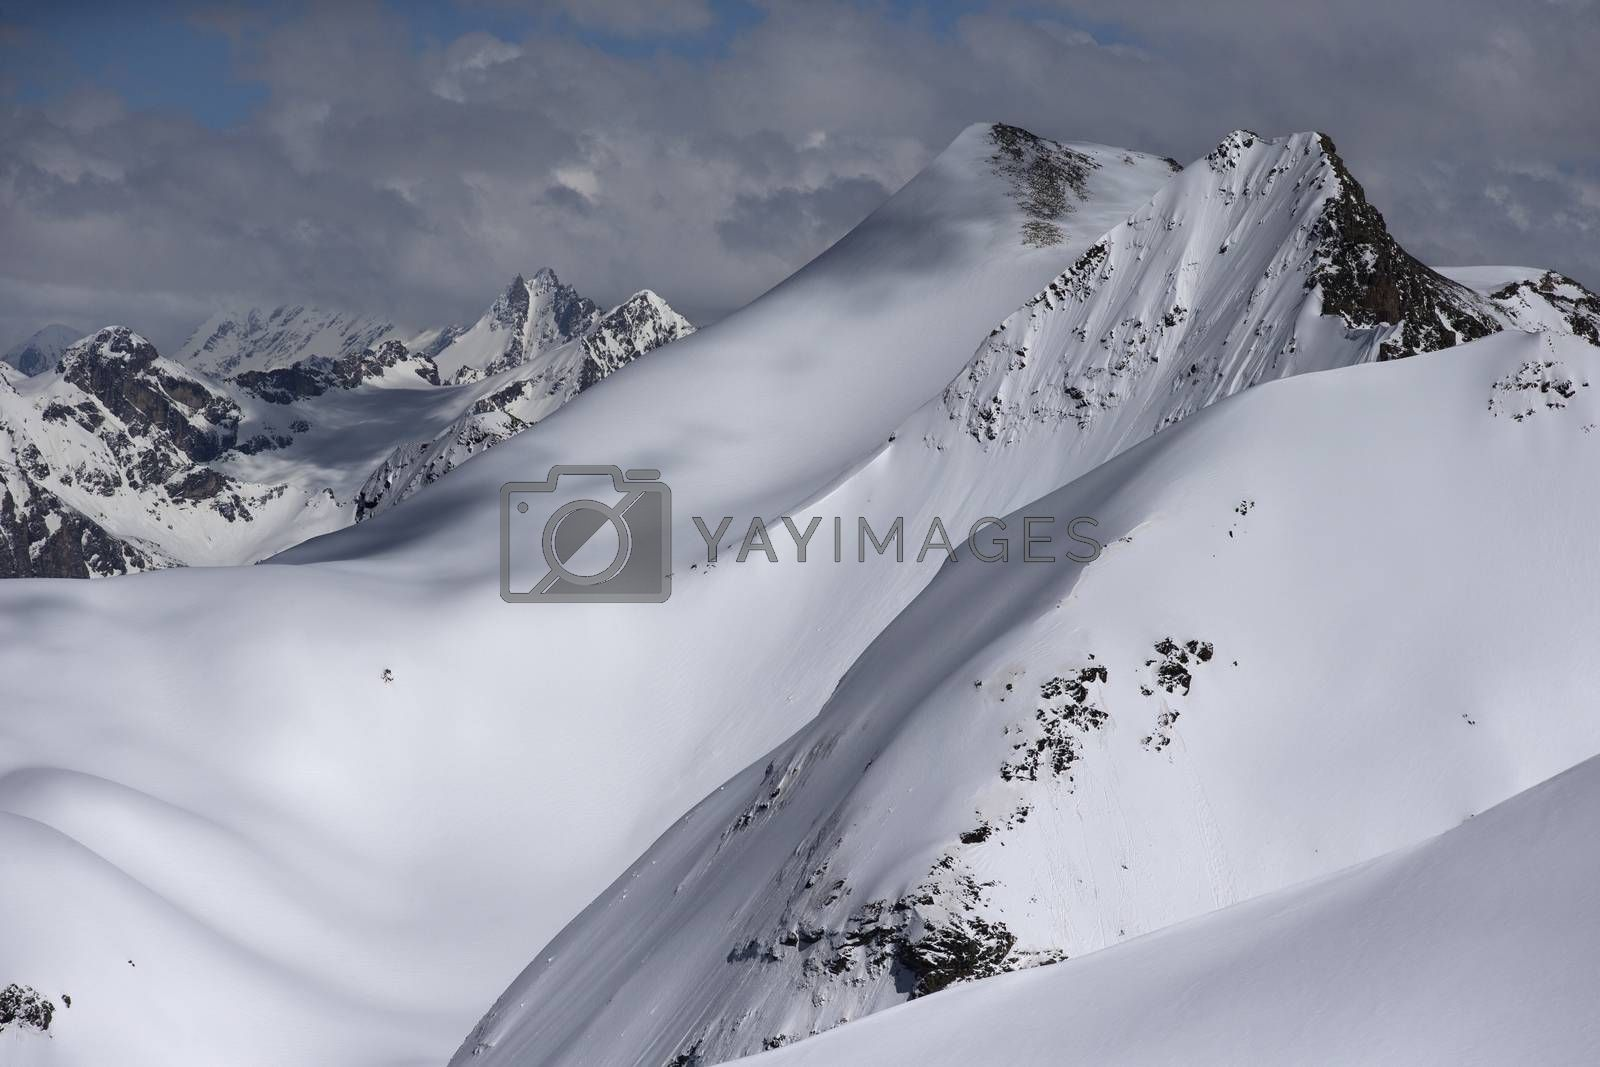 Royalty free image of Snow-covered mountain tops. Russia, Caucasus. by phortcach